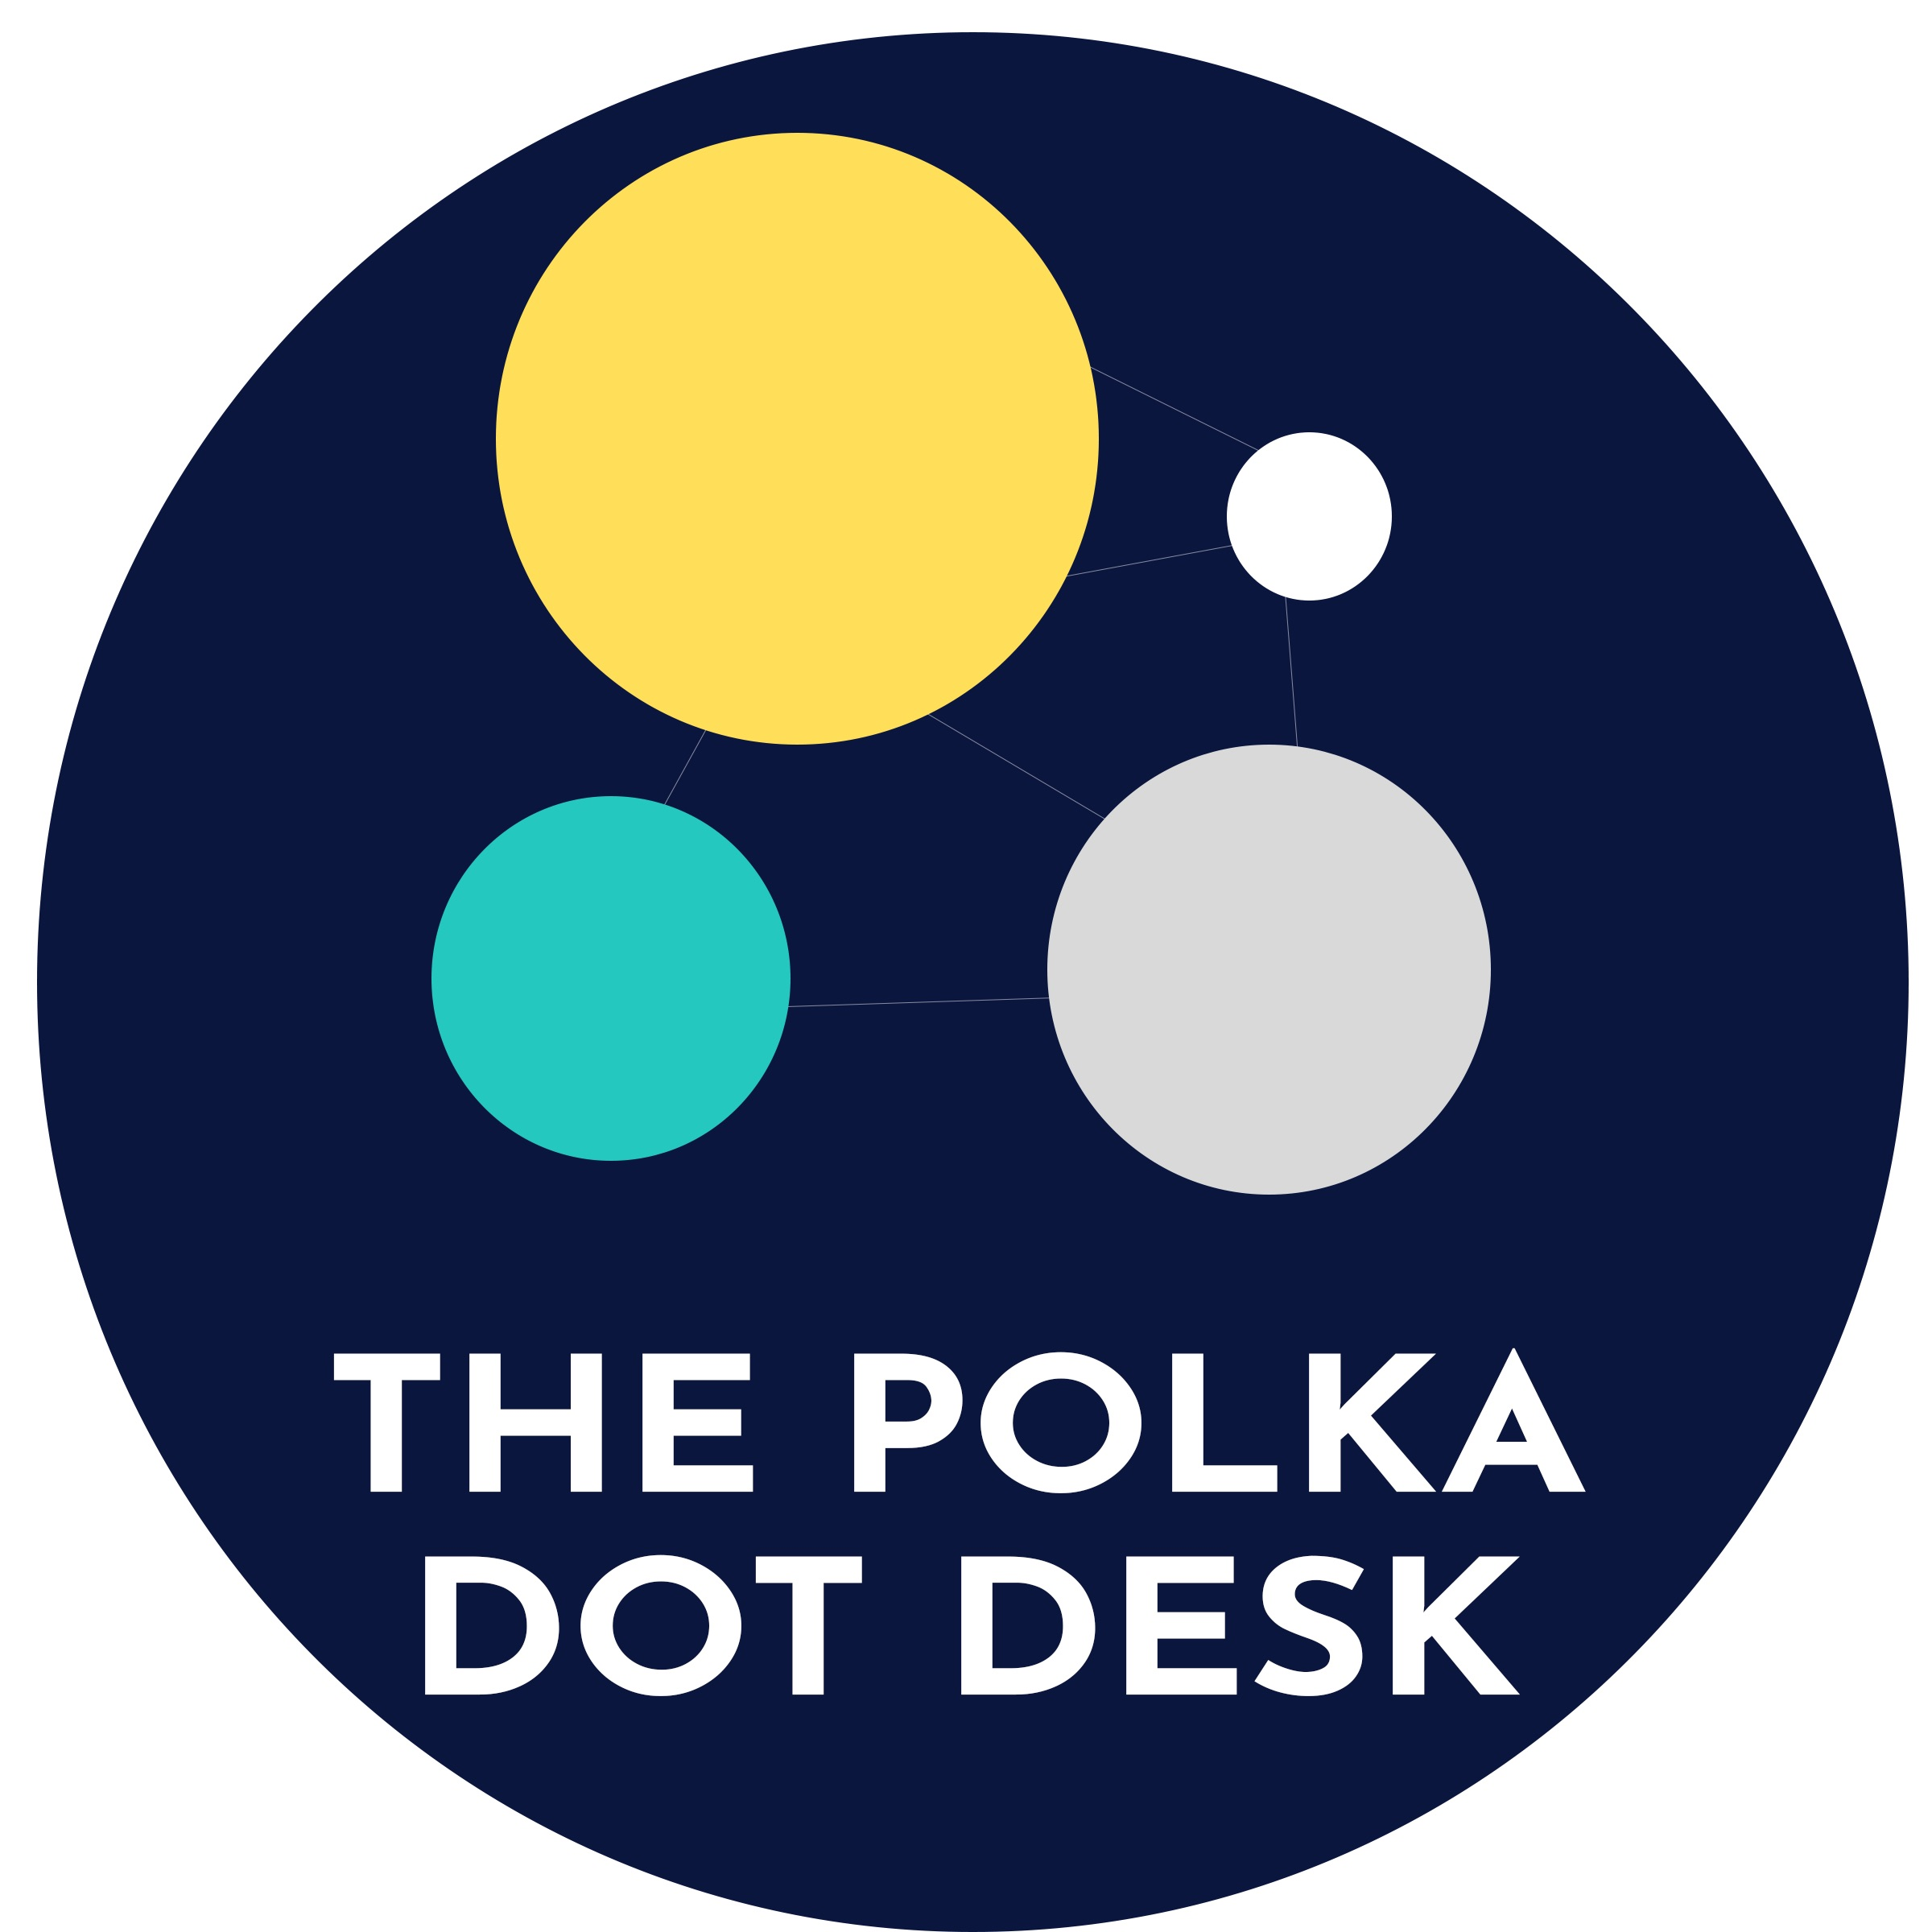 The Polka Dot Desk